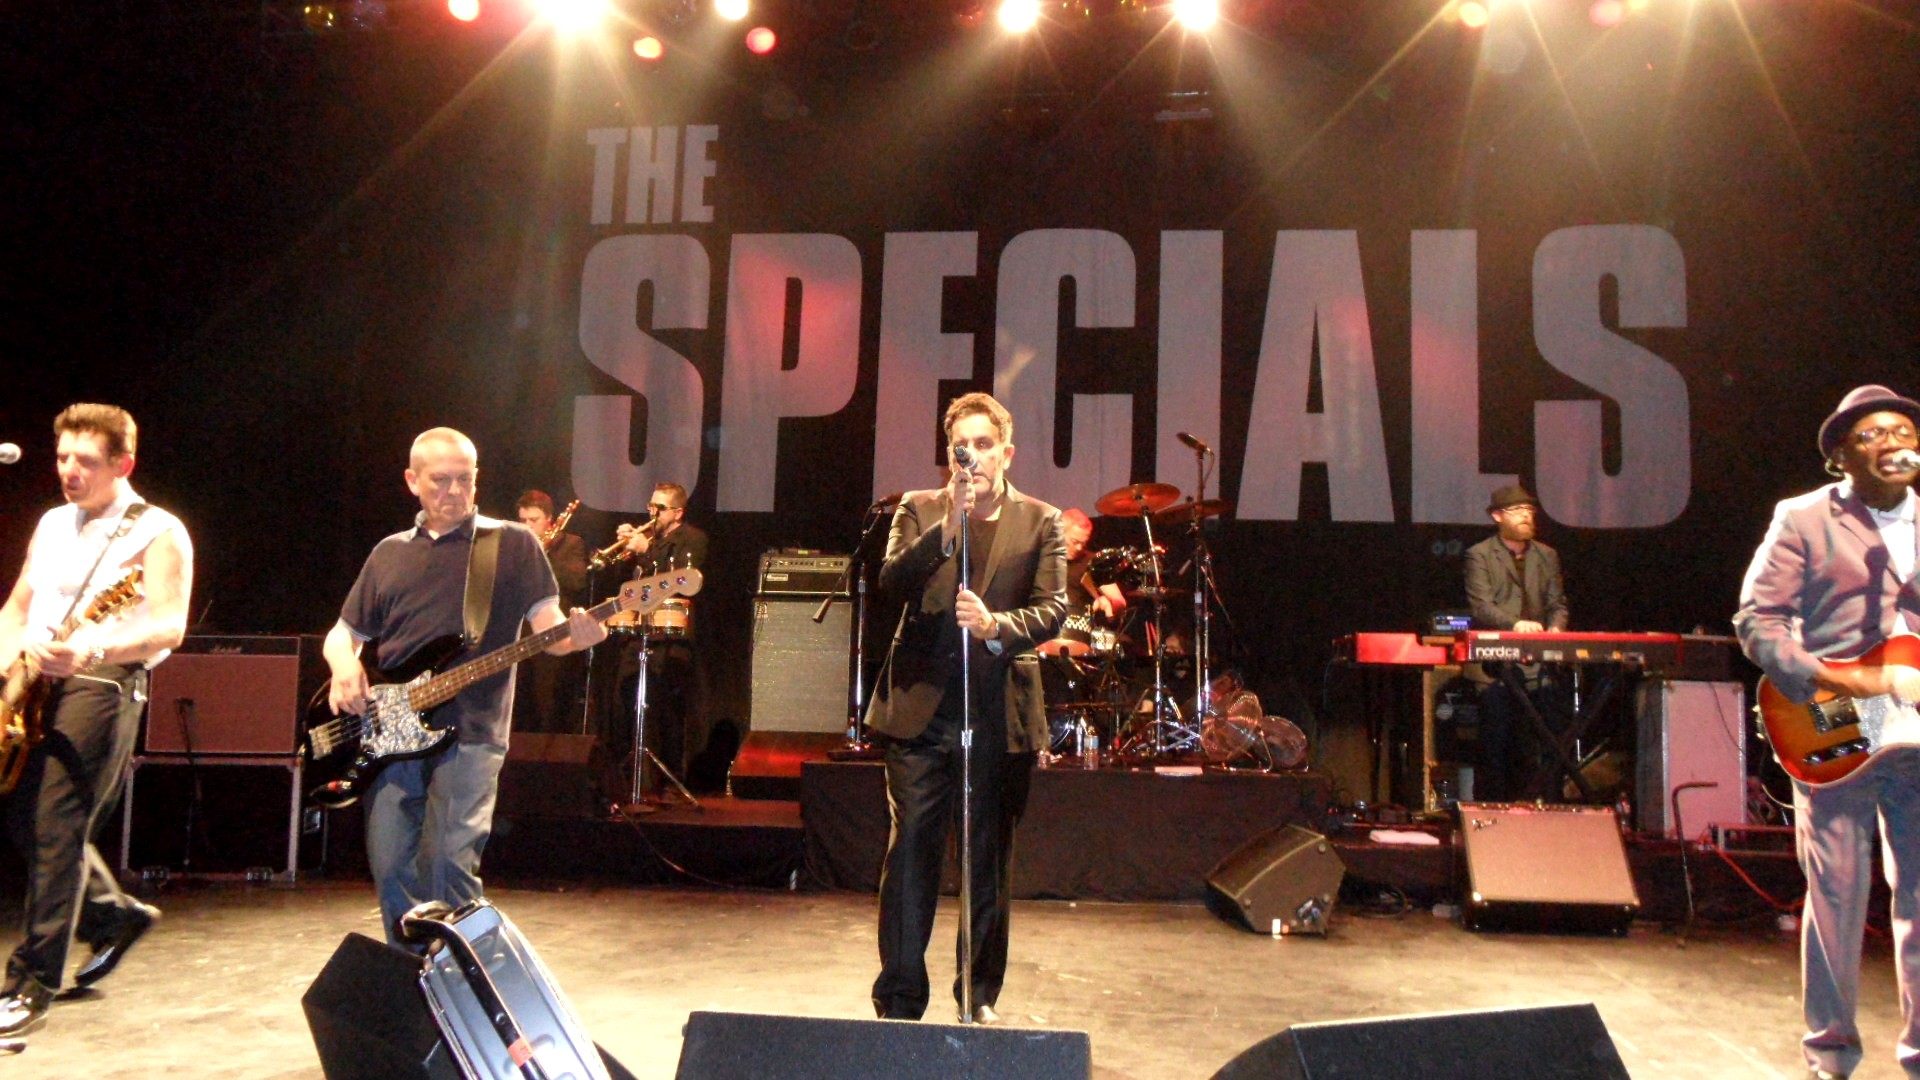 the specials wikipedia specialized specials #10